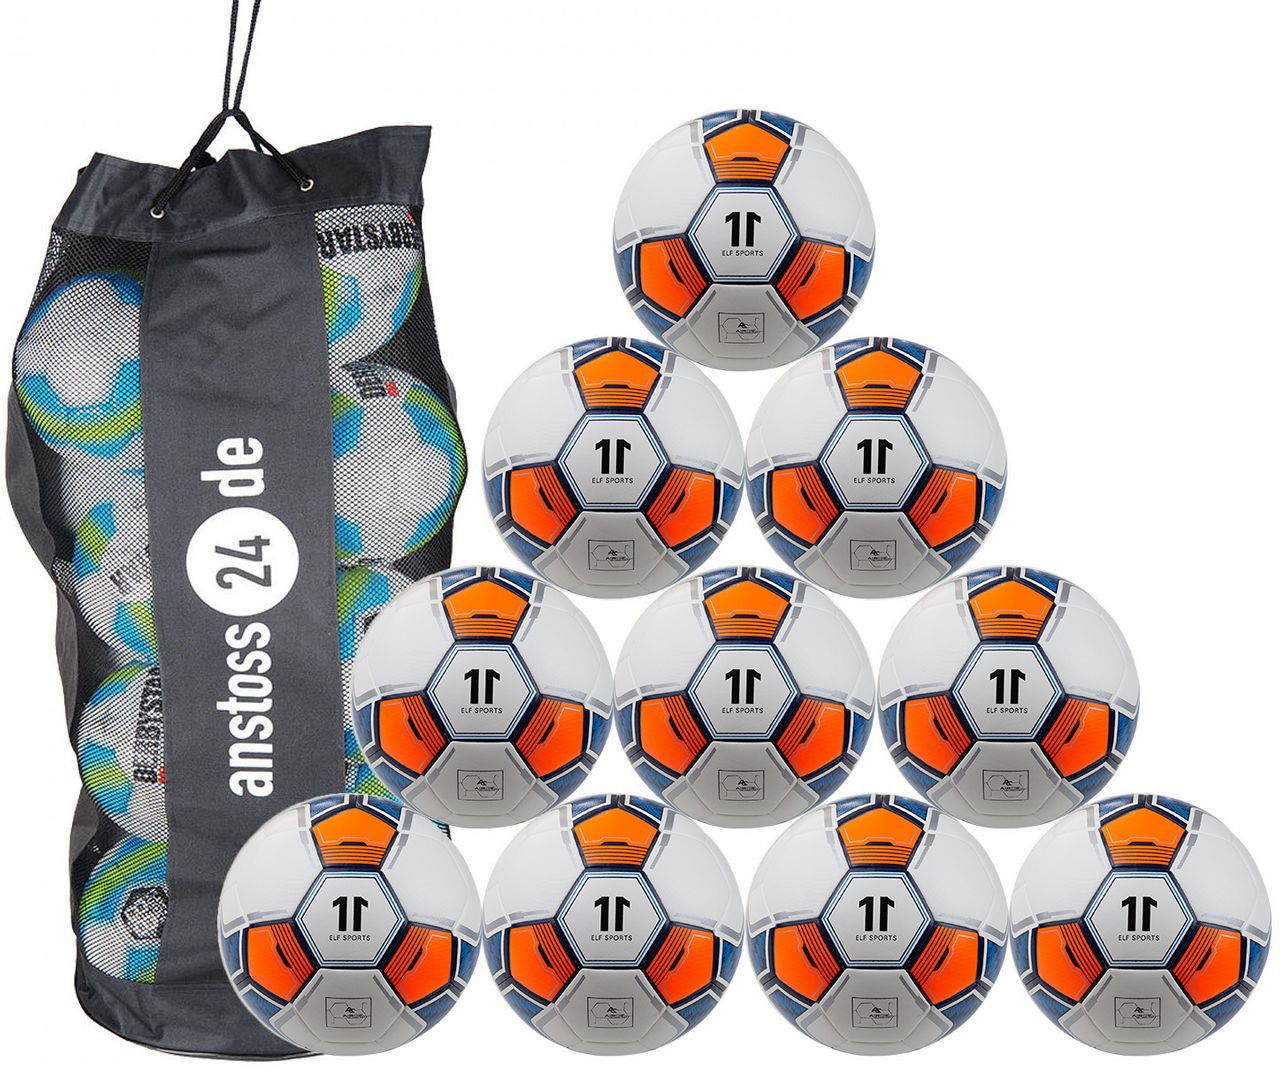 10 x ELF Sports Training Ball - Hybrid Premium - Football with structured surface - incl. ball sack